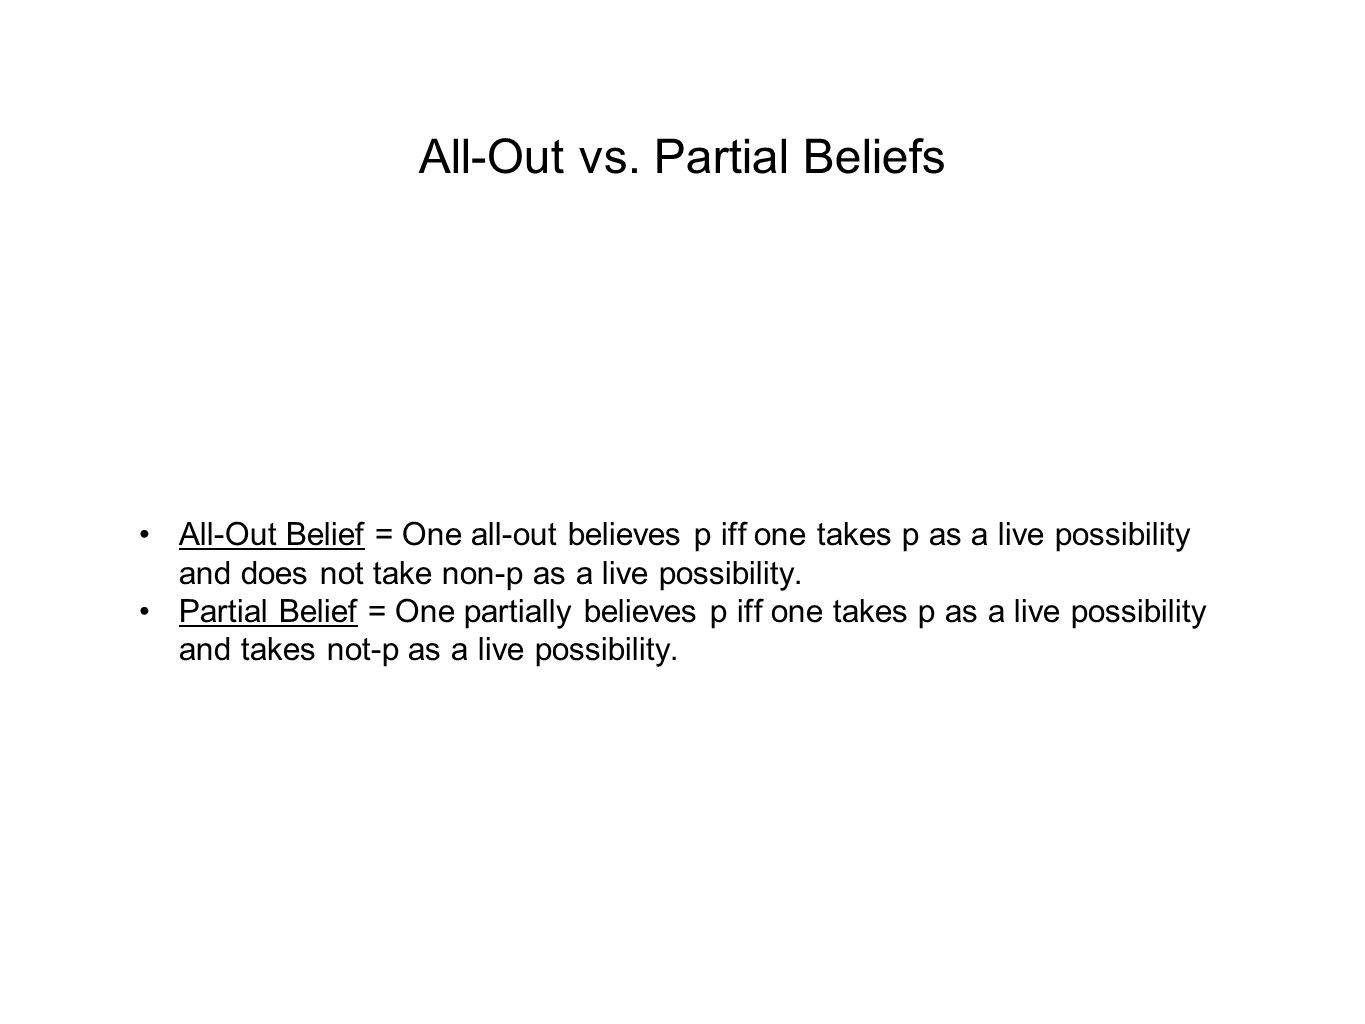 All-Out vs. Partial Beliefs All-Out Belief = One all-out believes p iff one takes p as a live possibility and does not take non-p as a live possibilit